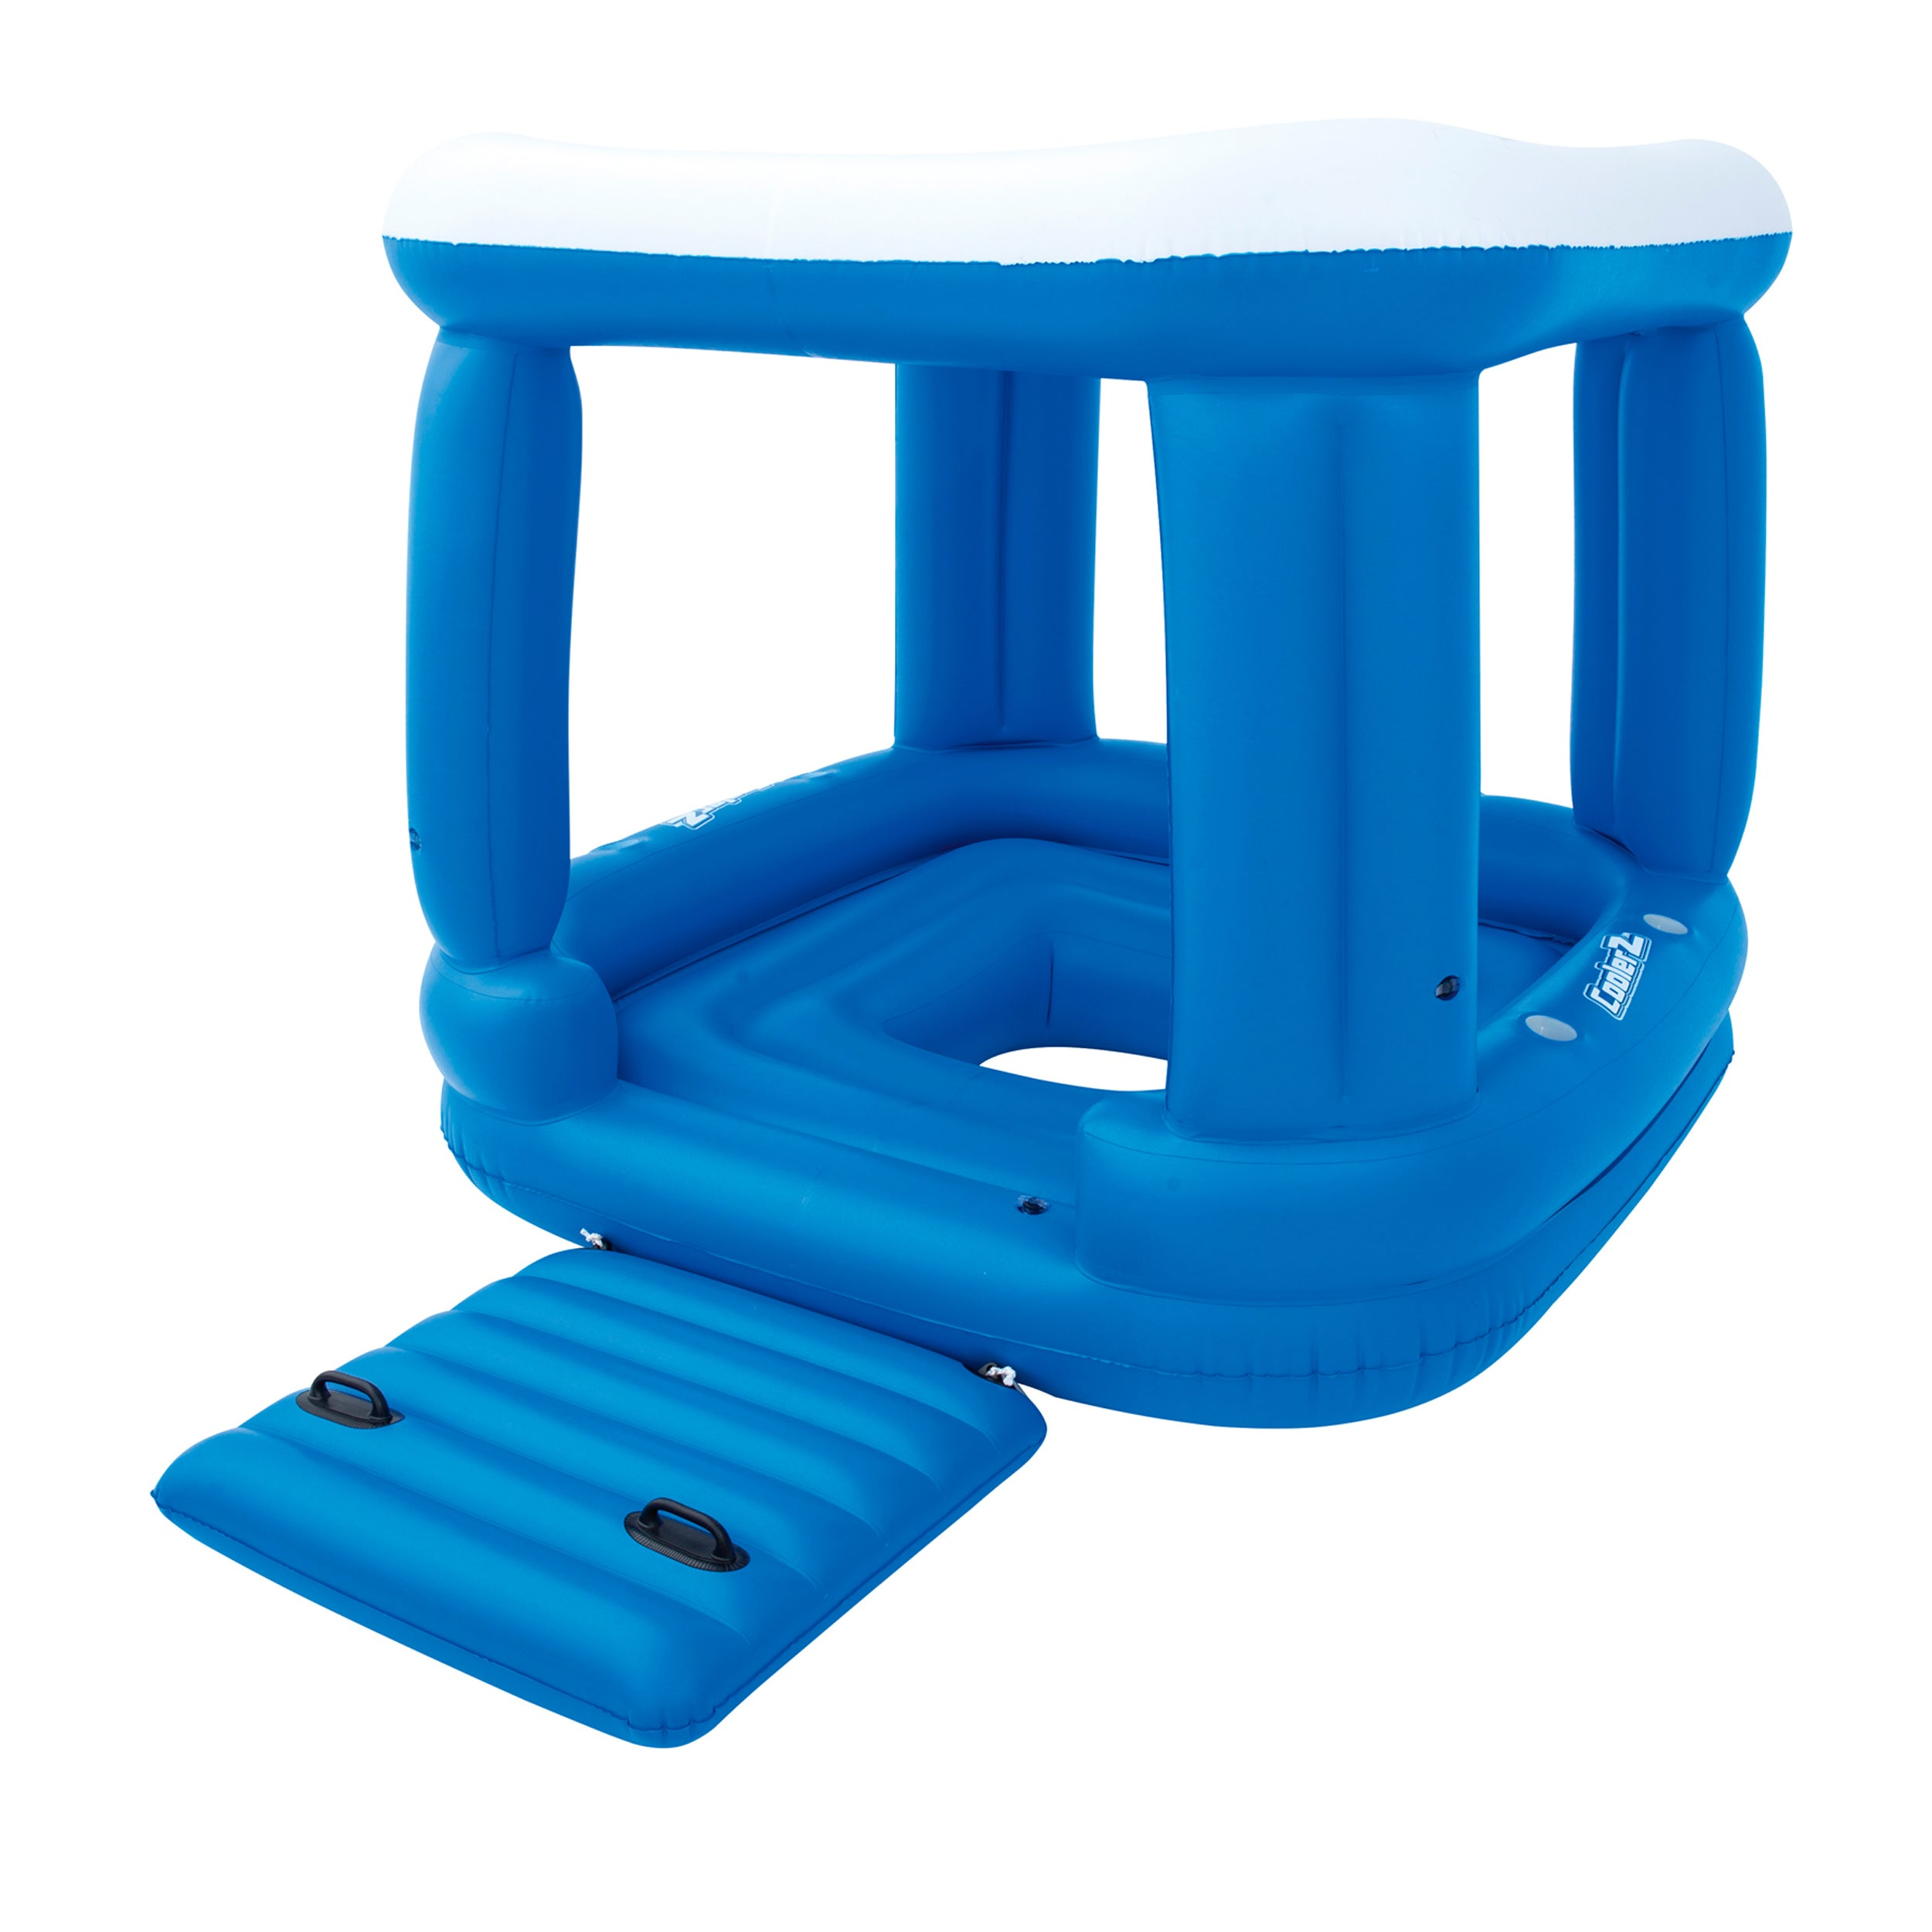 Bestway Coolerz 7.2 Foot Lazy Dayz Kube (1), Blue